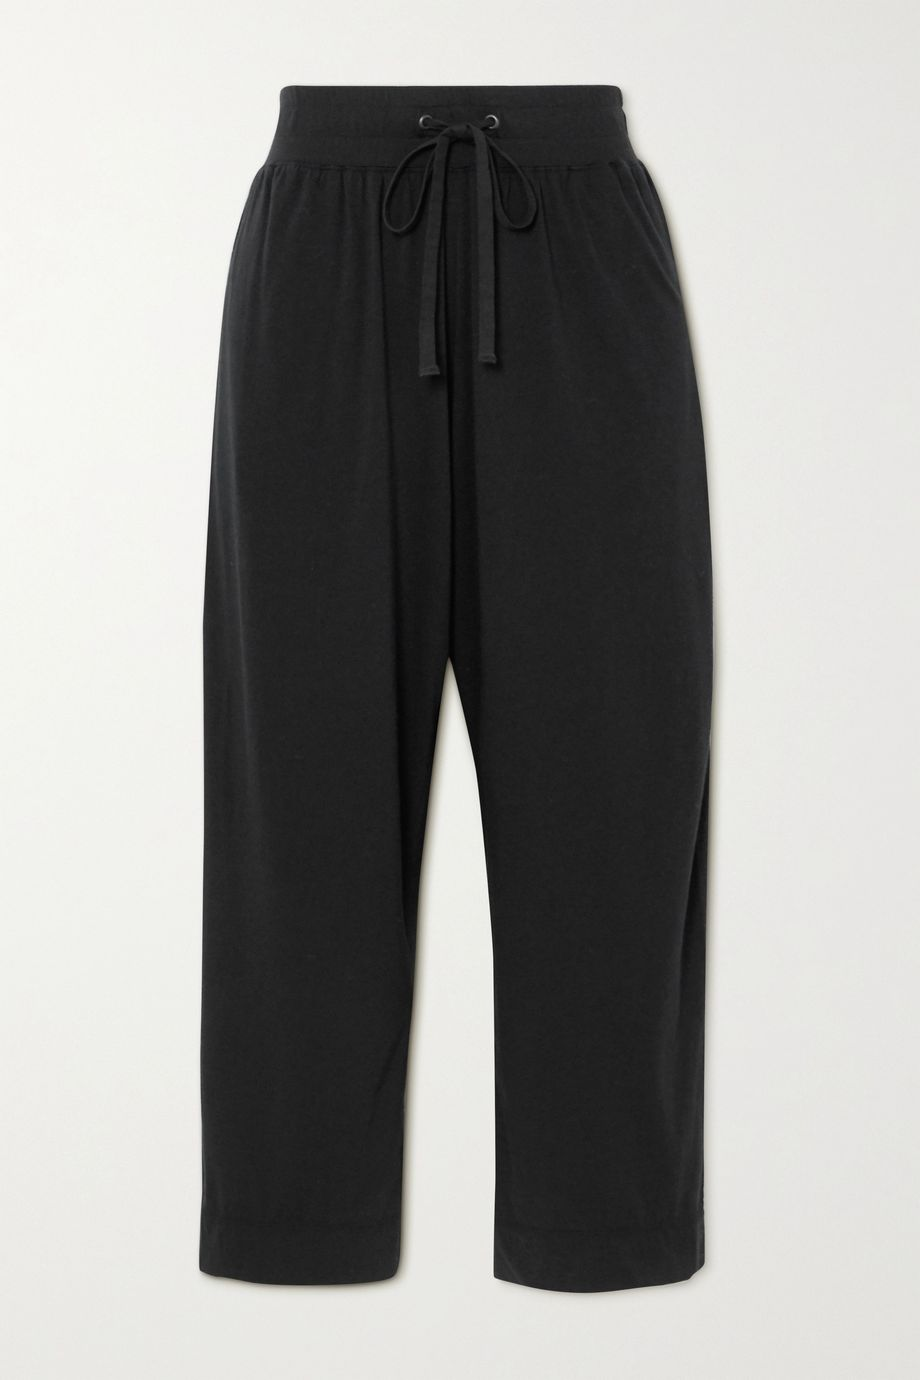 James Perse Lotus cotton-jersey track pants